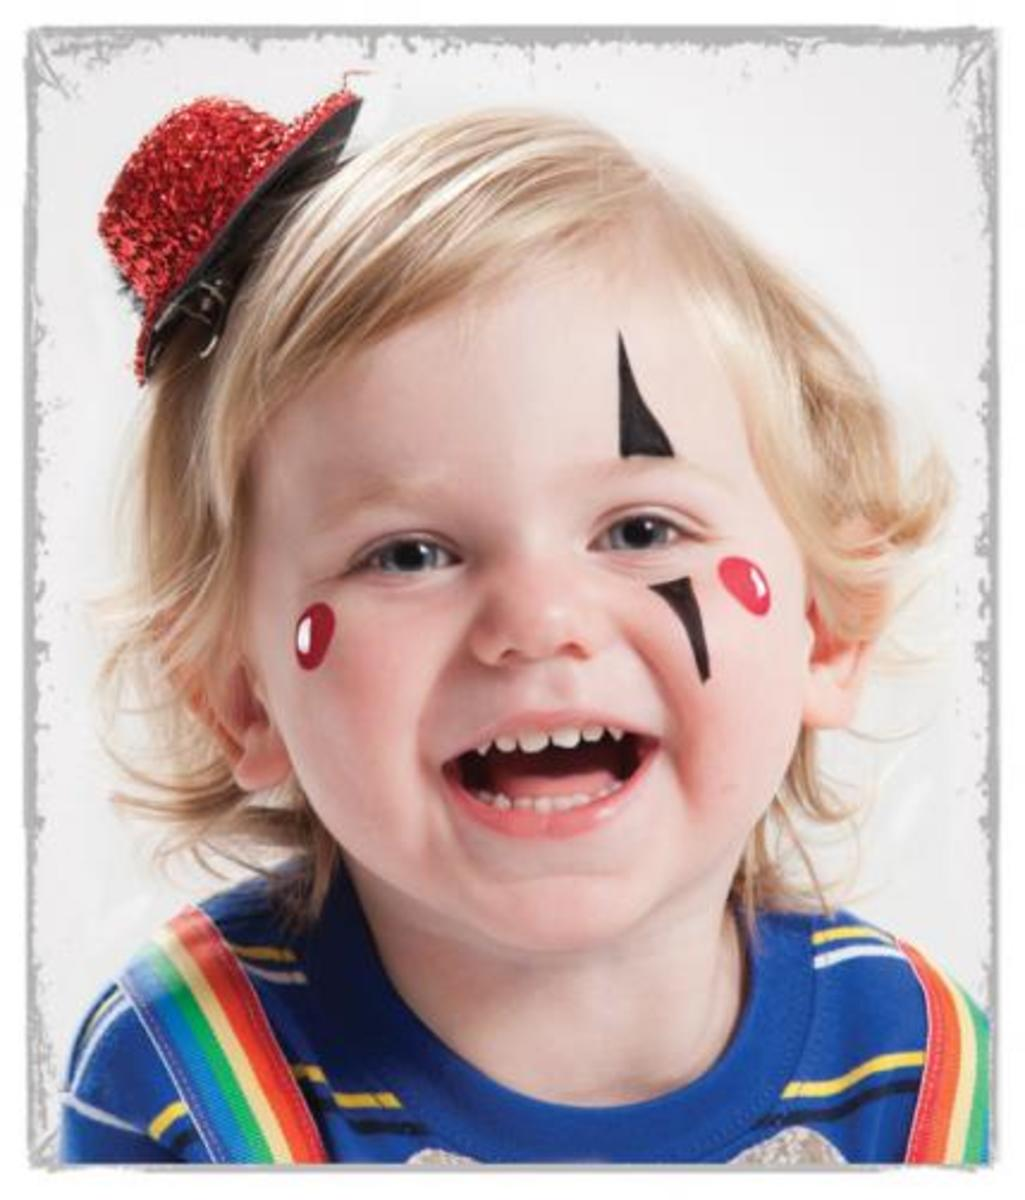 Tips for Face Painting Success